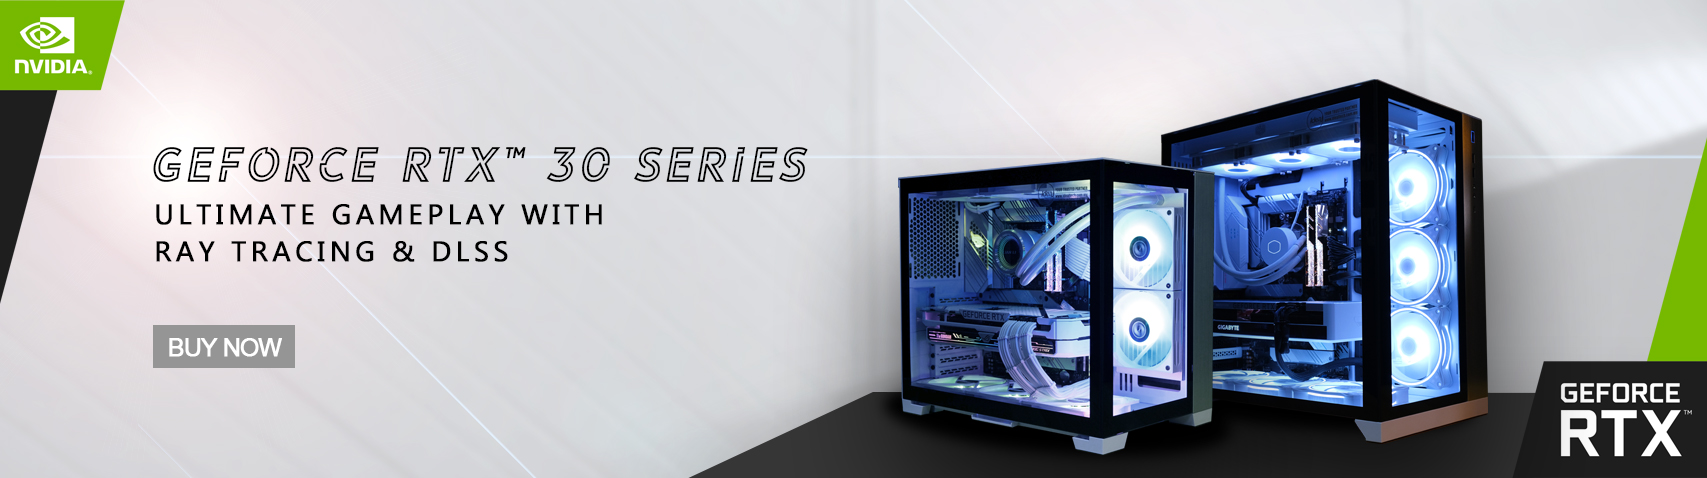 Nvidia-Home-Page-Banner2-1707x478